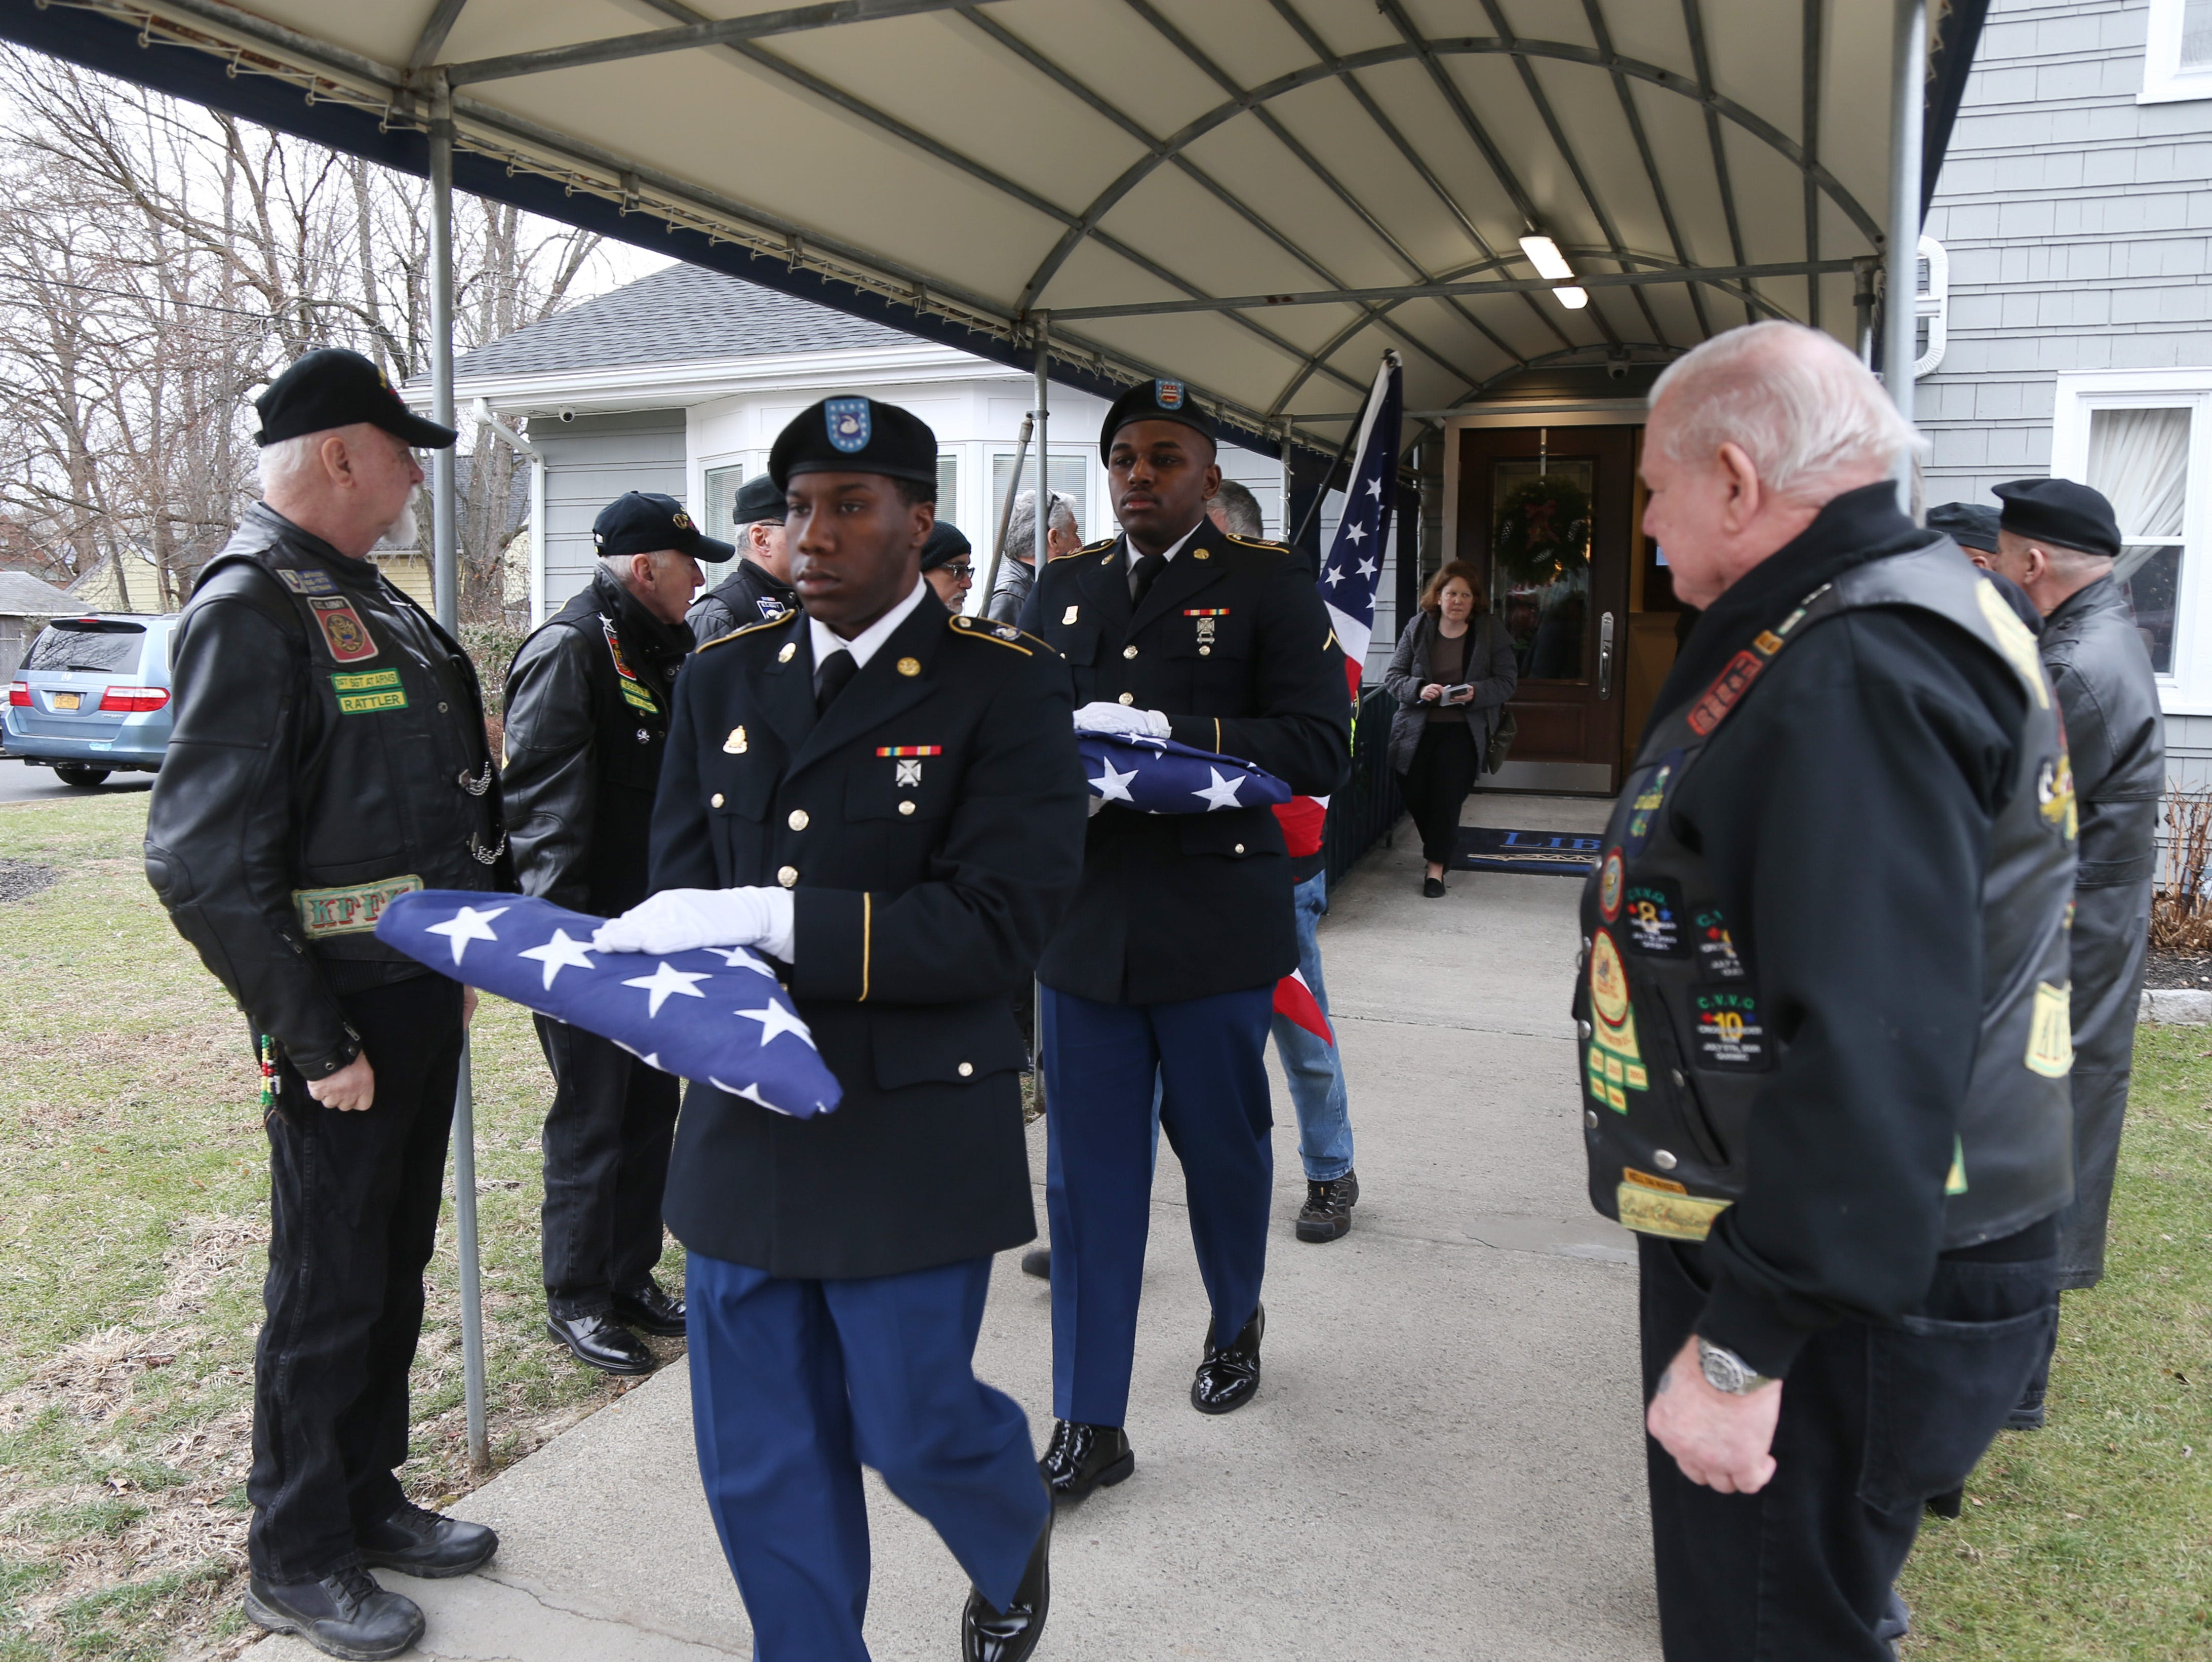 US Army honor guard carry the remains of four military veterans following Thursday's memorial service at Libby Funeral Home in Beacon on January 10, 2019.